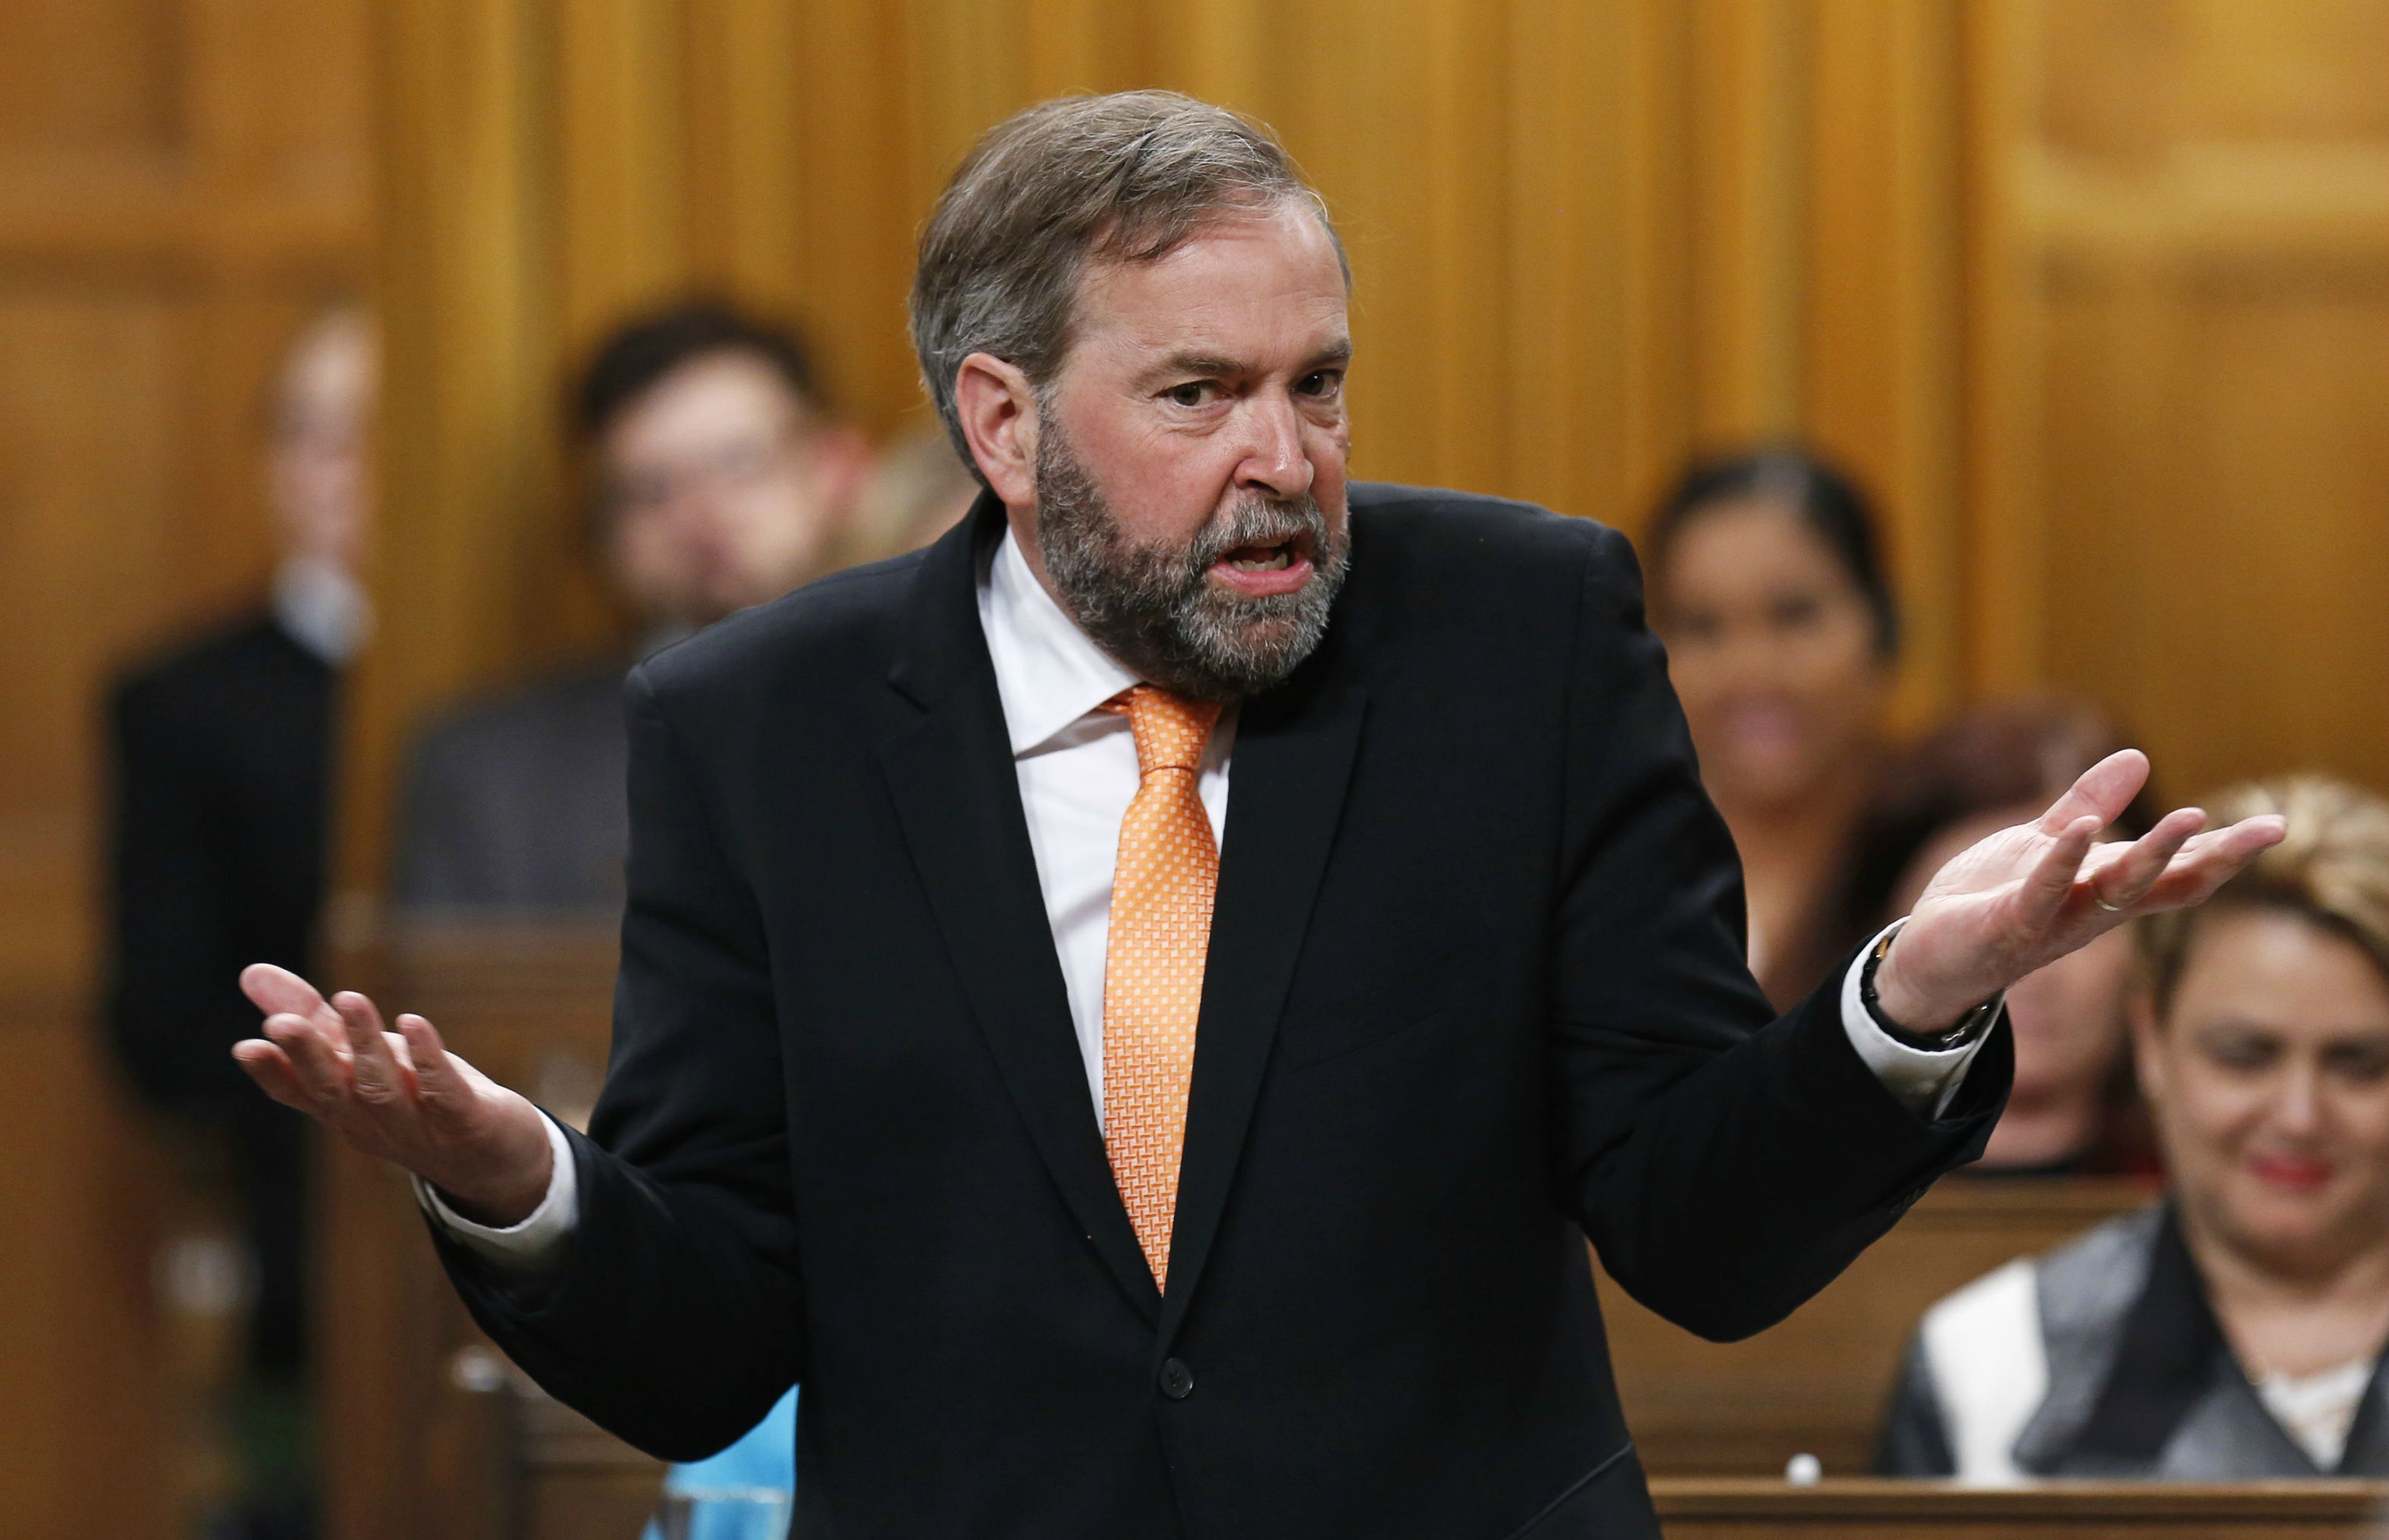 6. Trudeau's Intended Seat In Parliament Was Taken By Mulcair